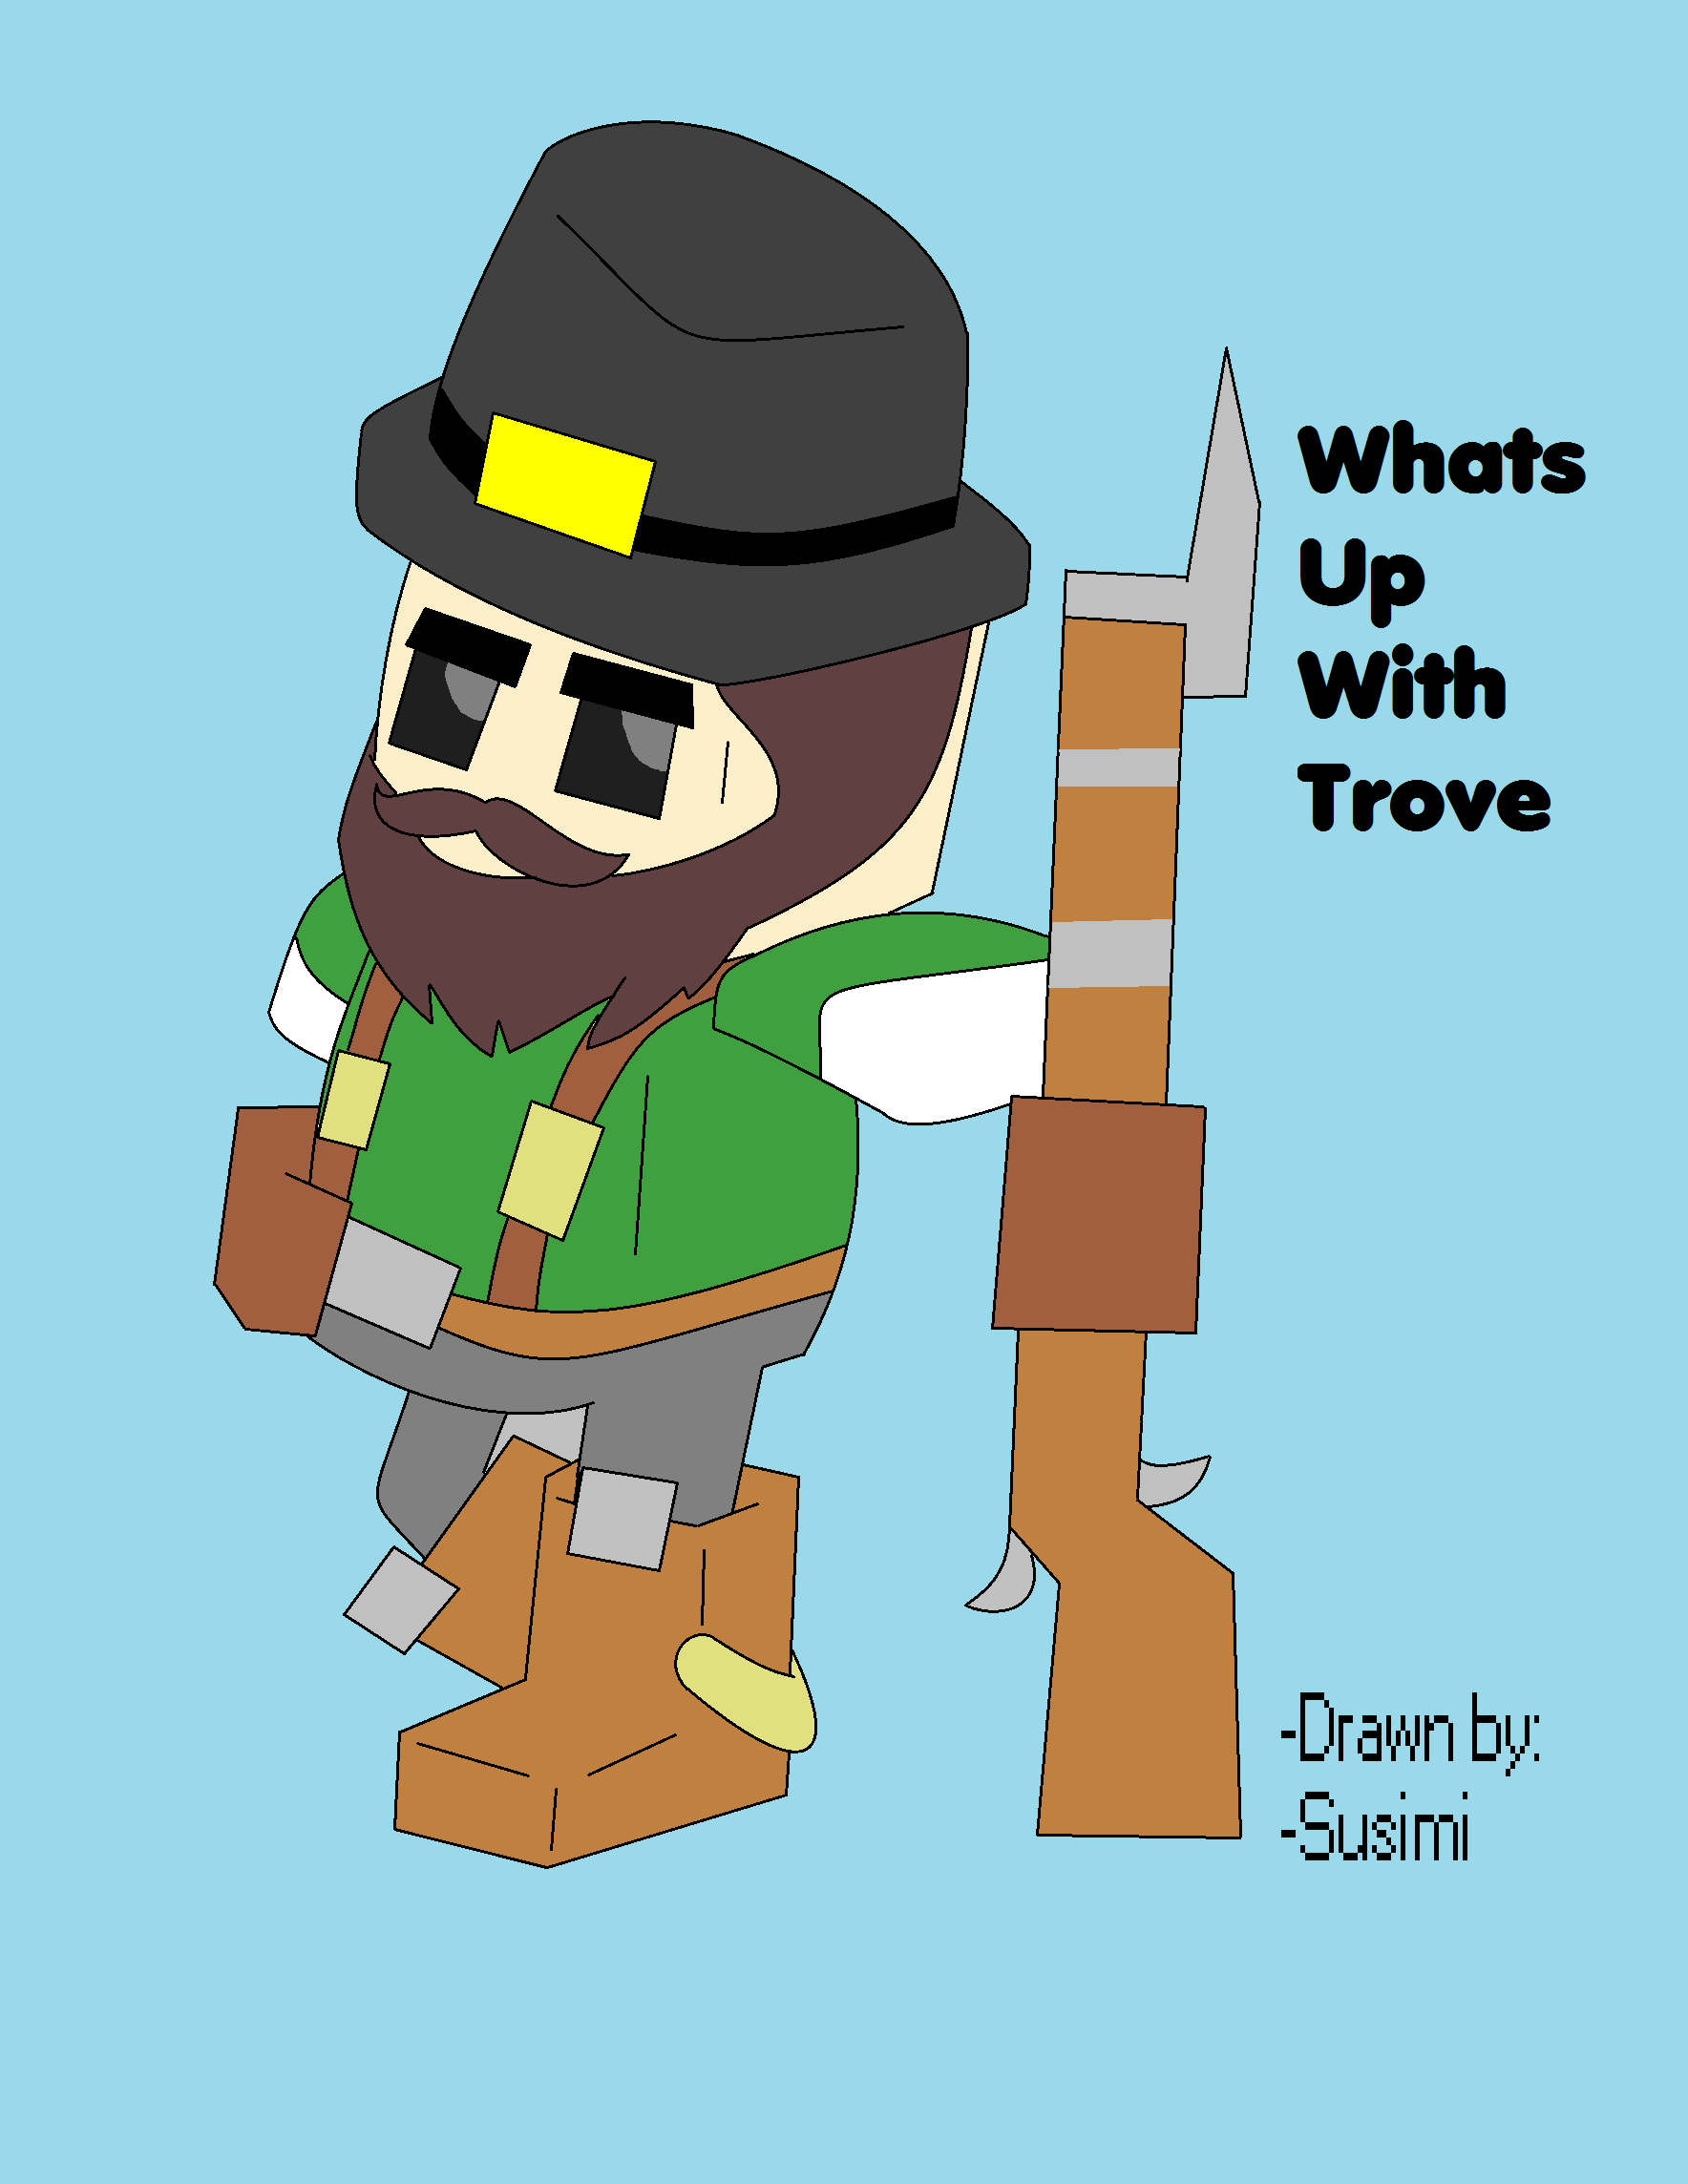 Whats Up With Trove